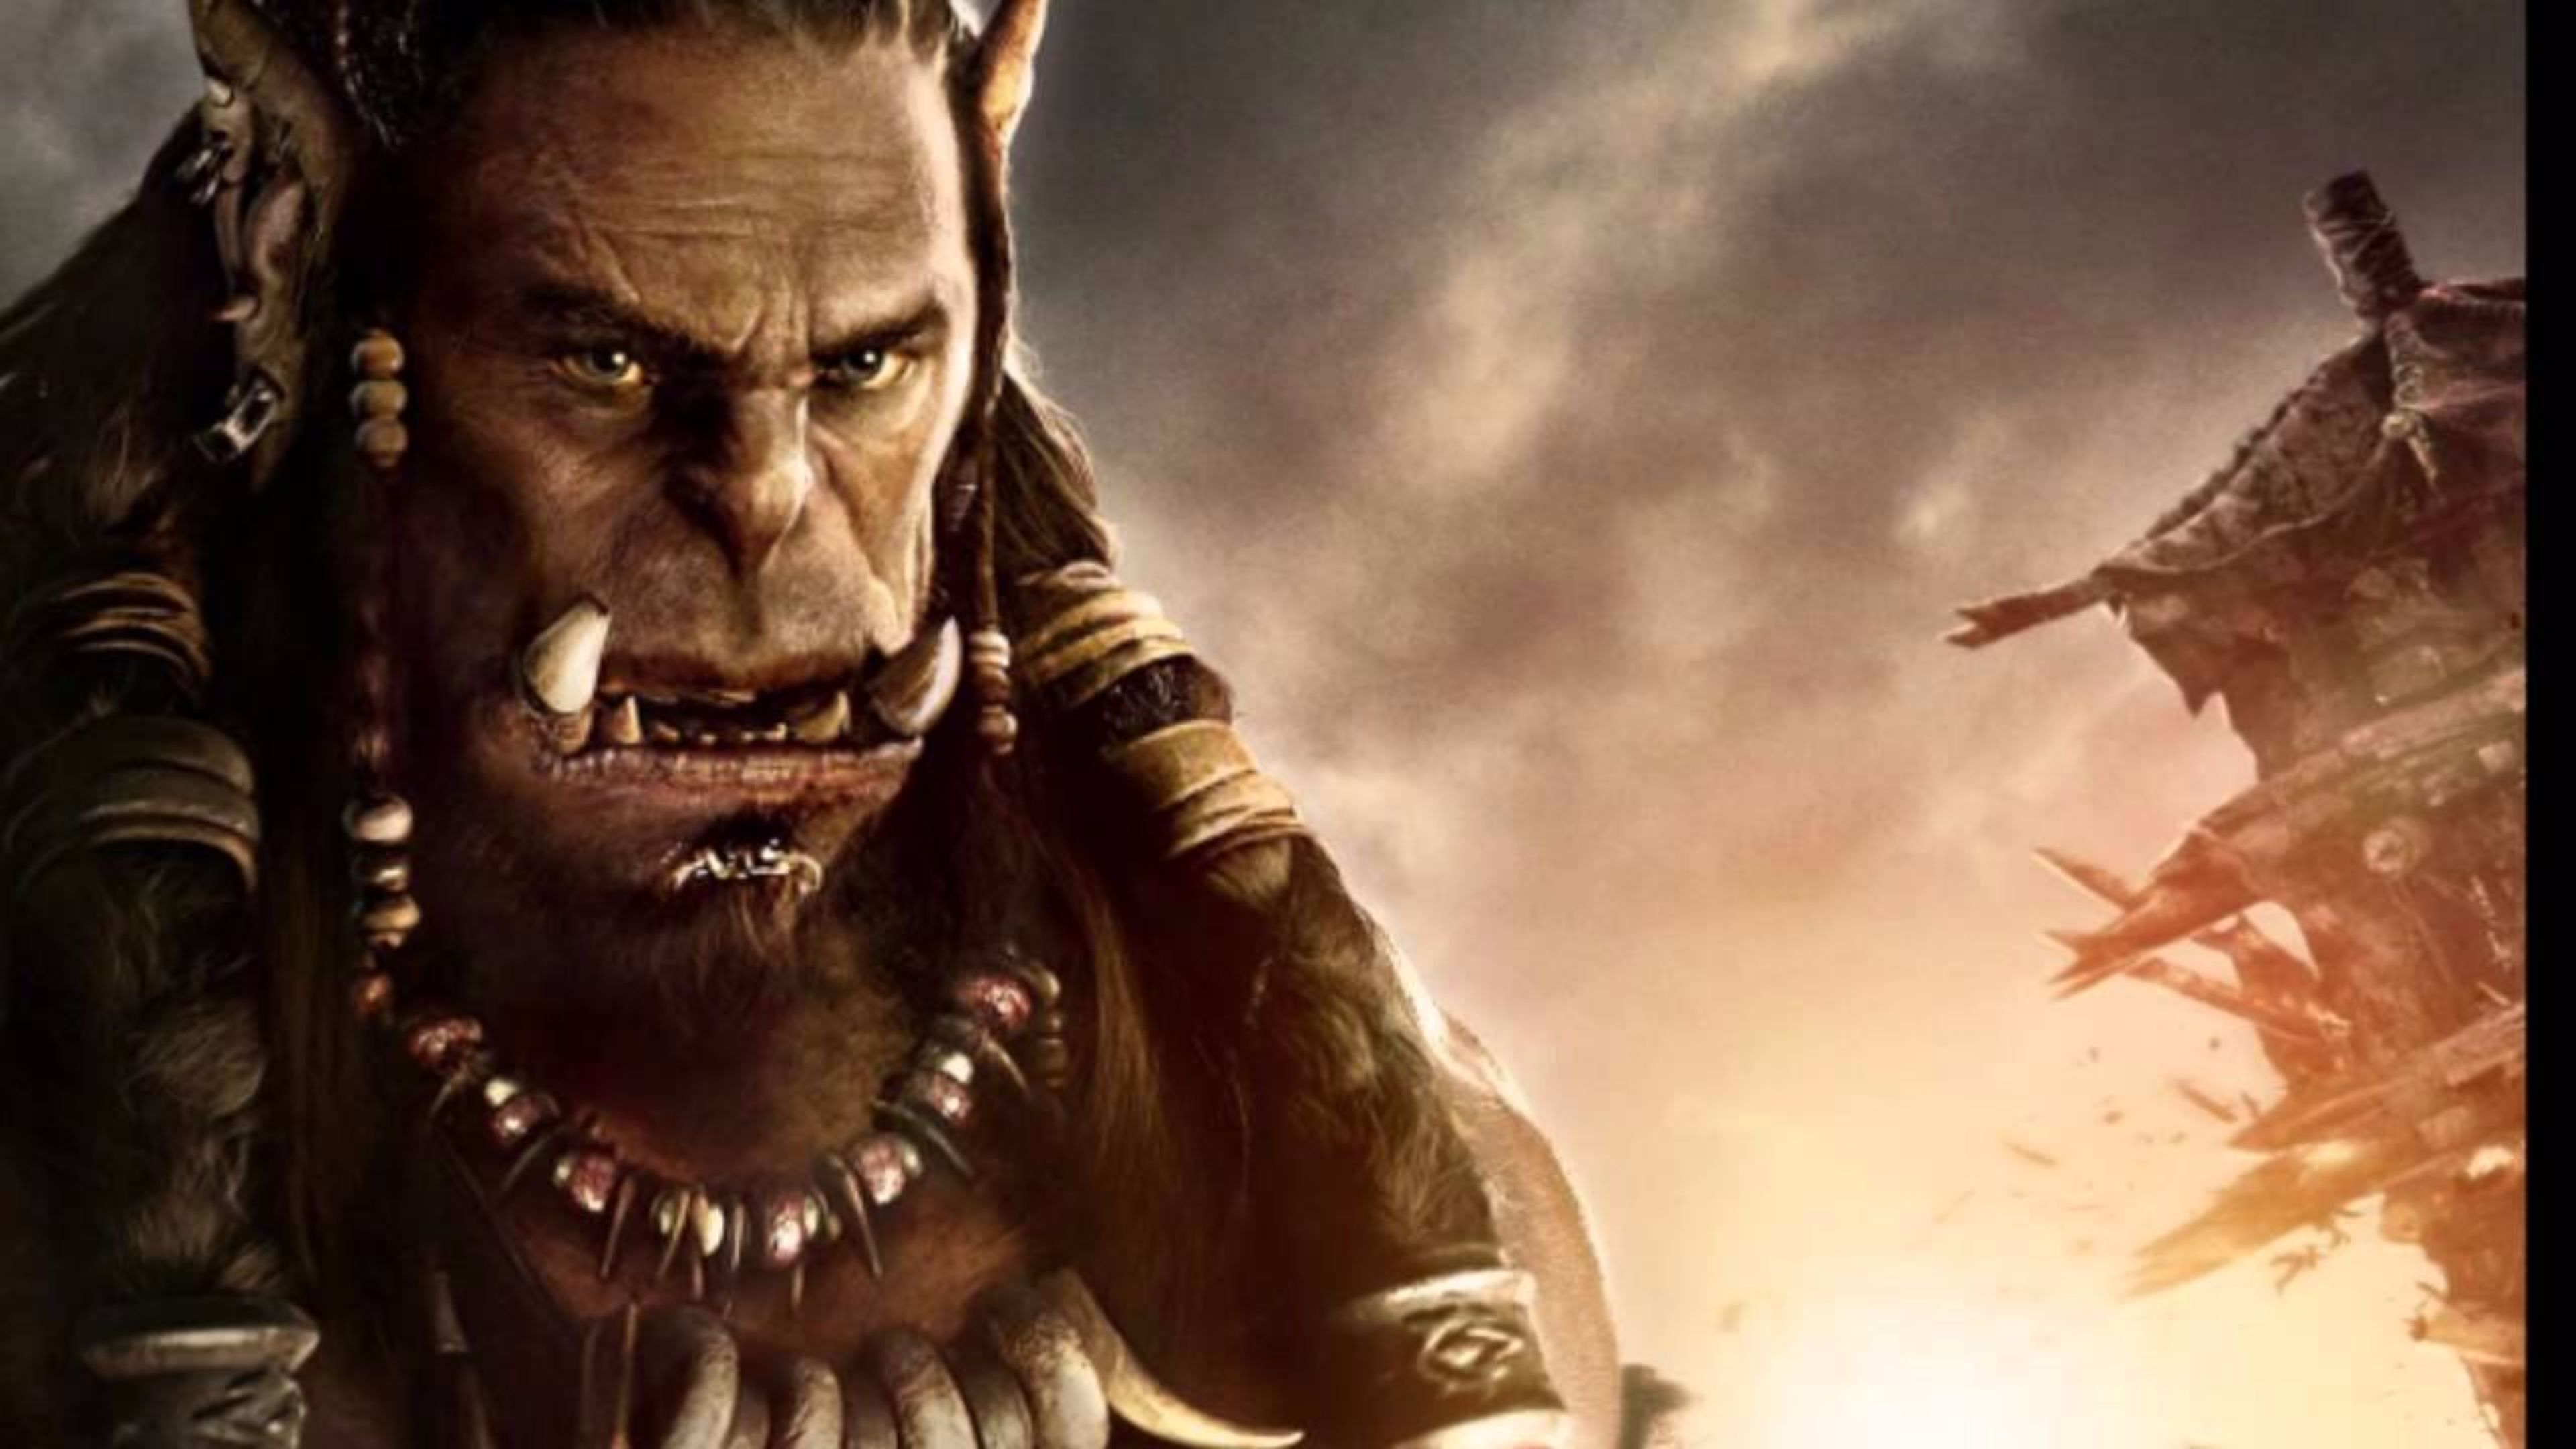 Warcraft Wallpapers 4k For Your Phone And Desktop Screen